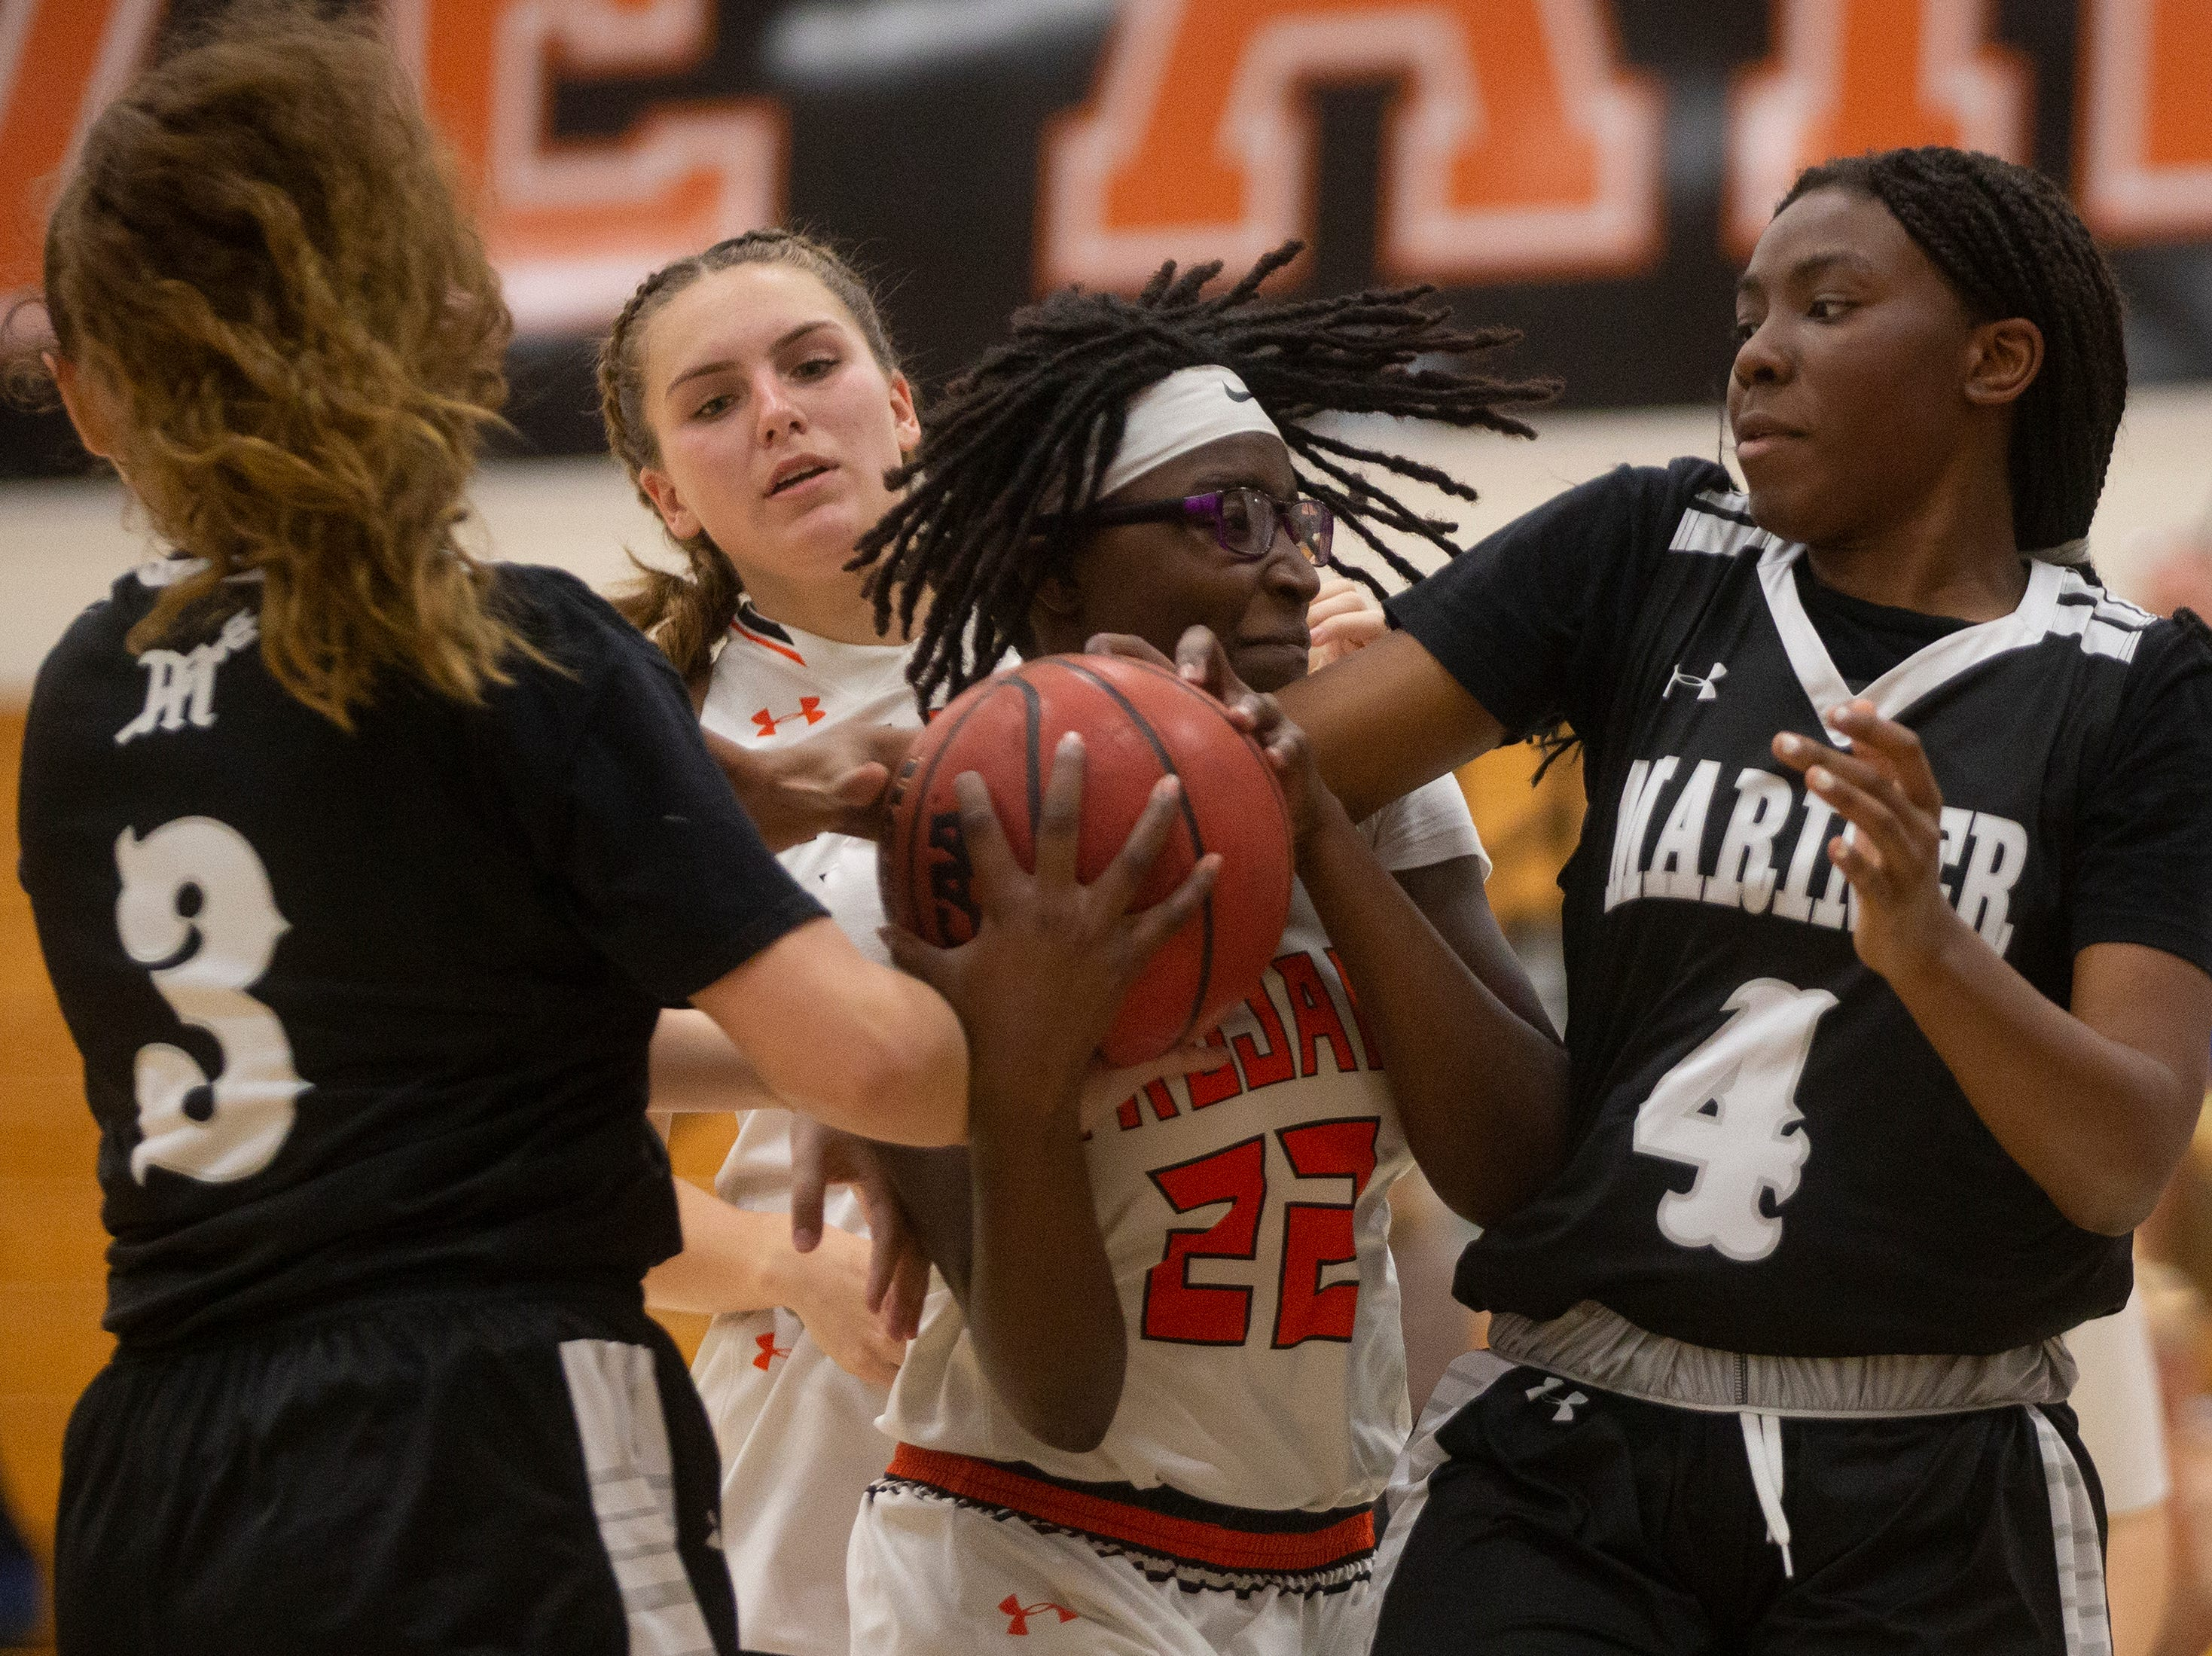 Lely High School's Kenya Stuart fights for the rebound against Mariners High School's Brianna Childs, left, and Naomi Darrett, Thursday, Feb. 6, 2019, at Lely High School.